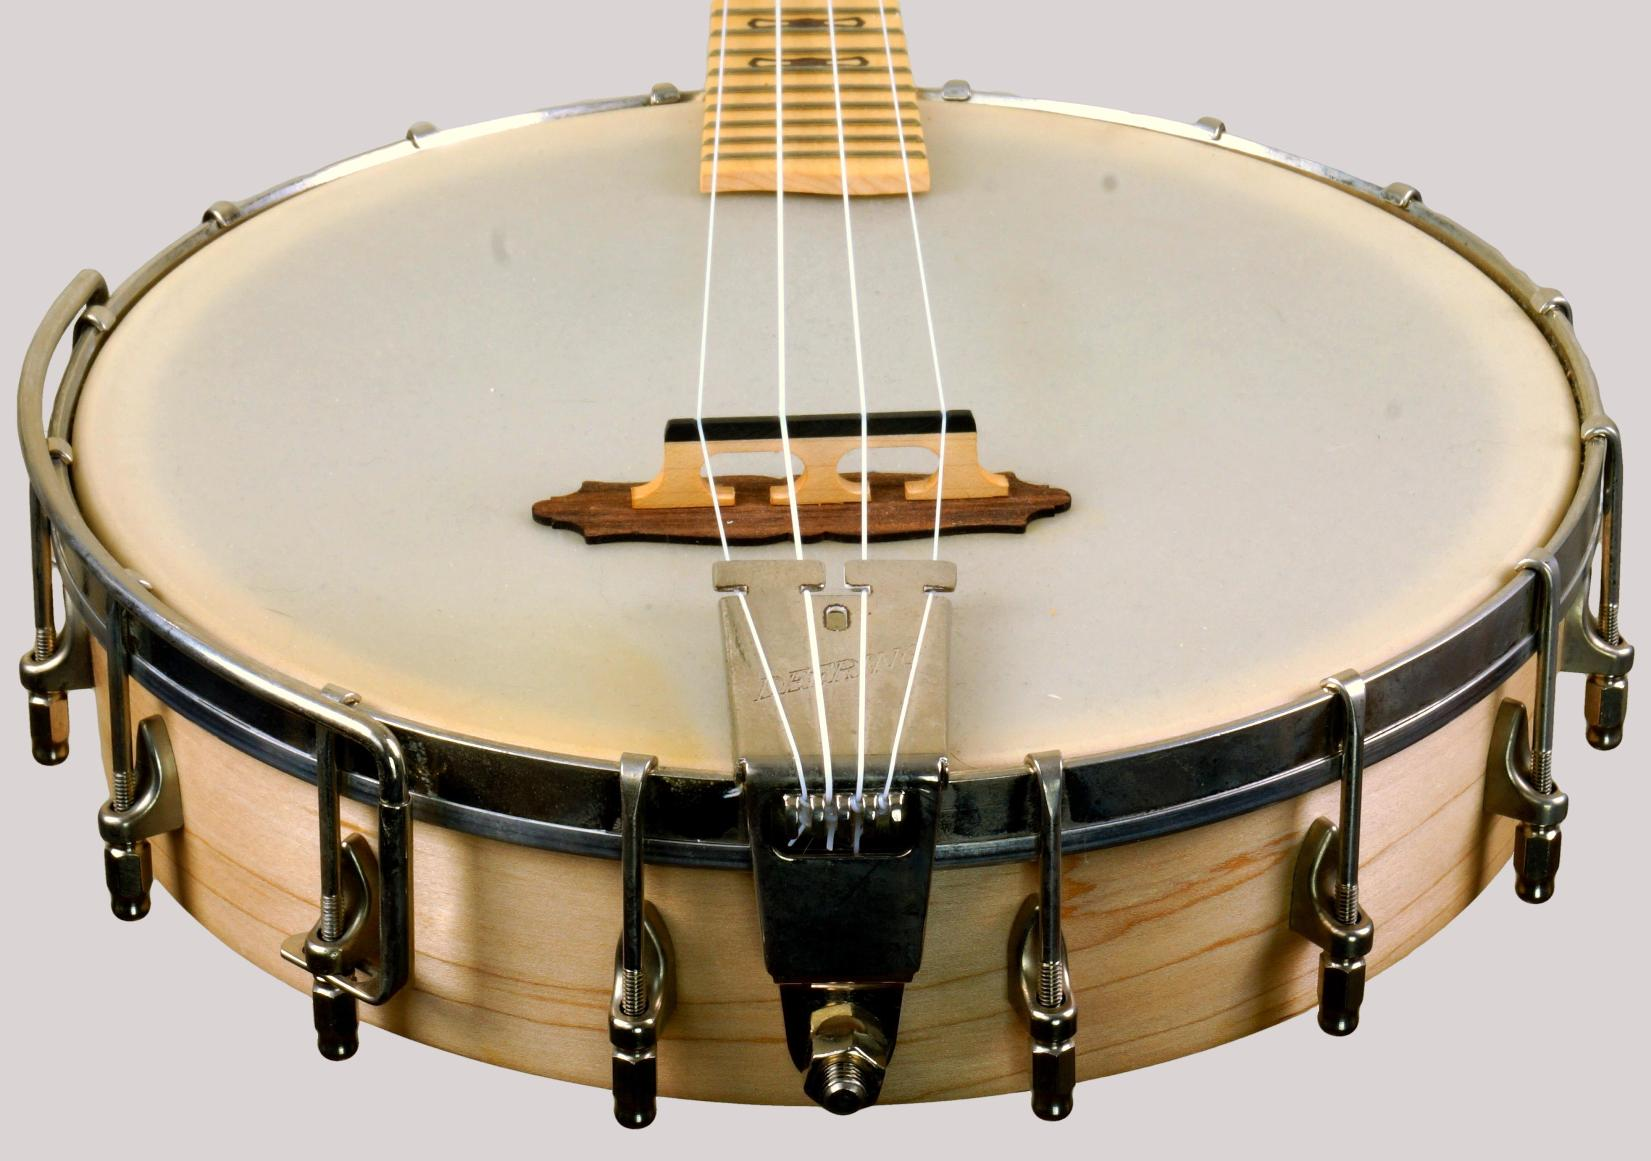 Deering Goodtime Concert Banjolele with an 11 inch drum